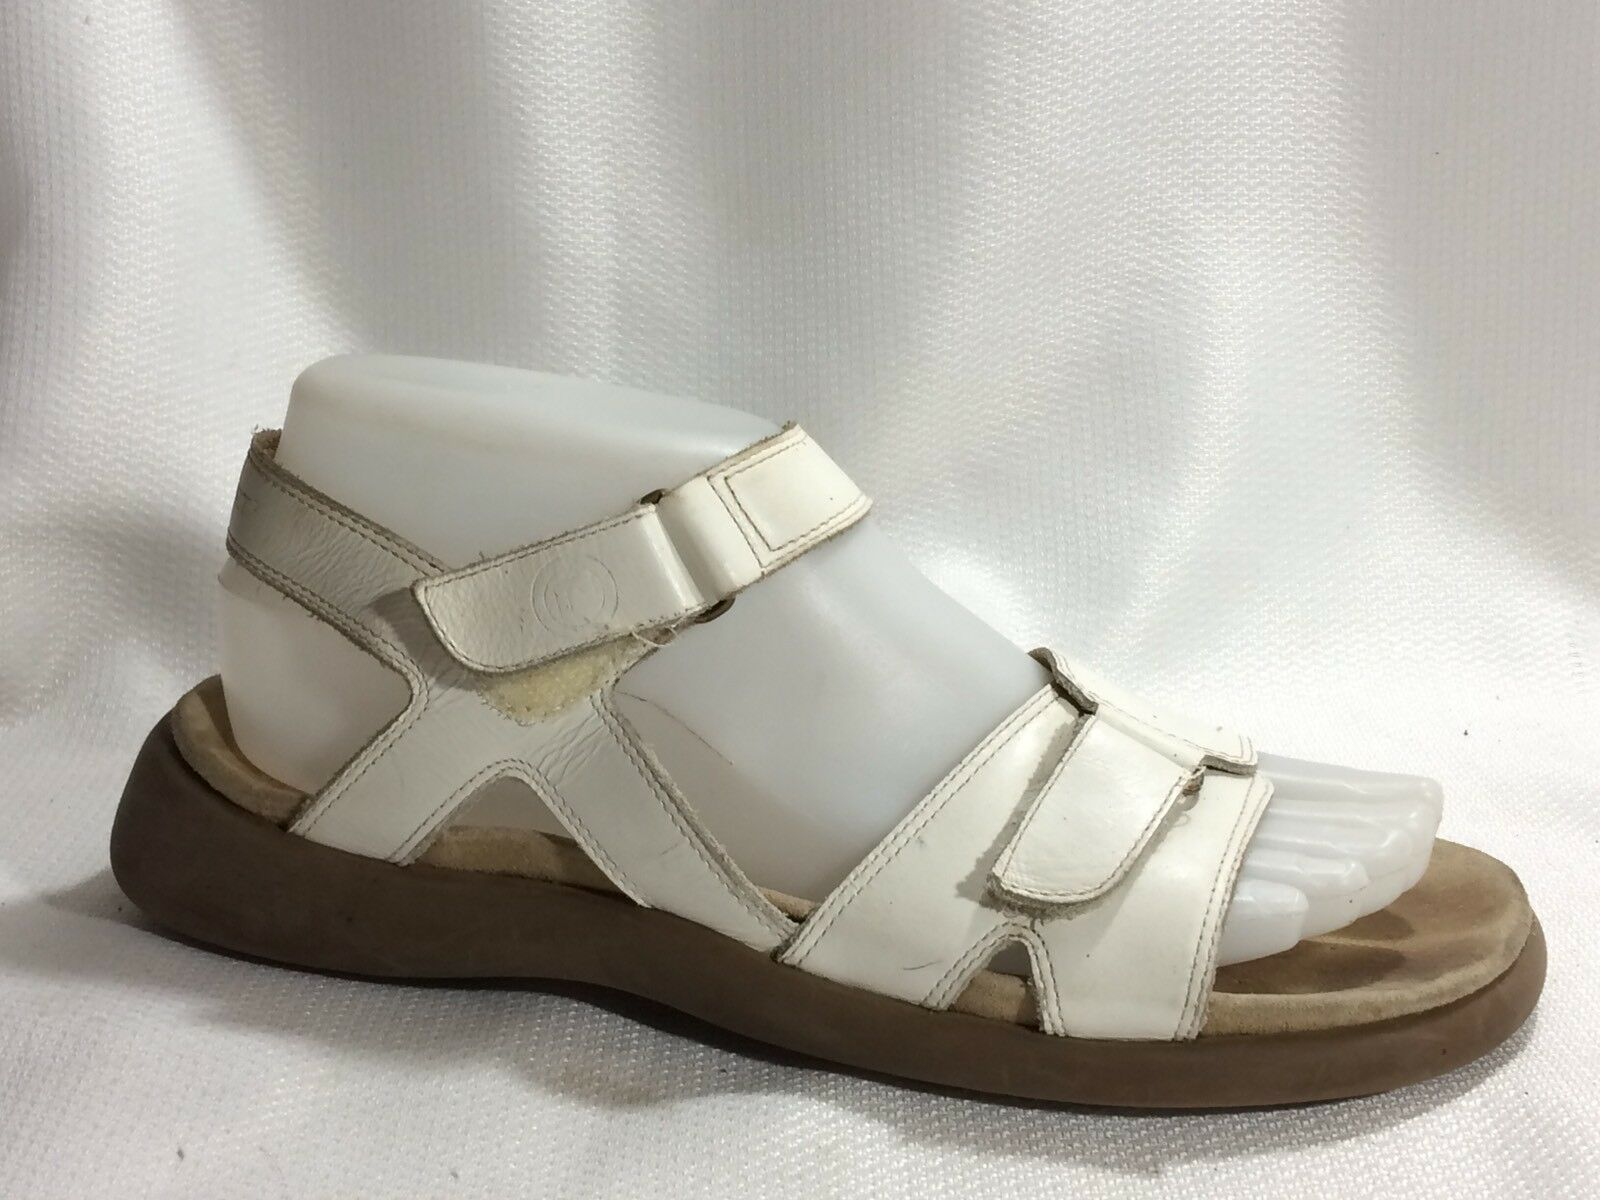 ROCKPORT White Leather Ankle Strap Wedge Heels Open Toe Sandals Womens 7 M shoes